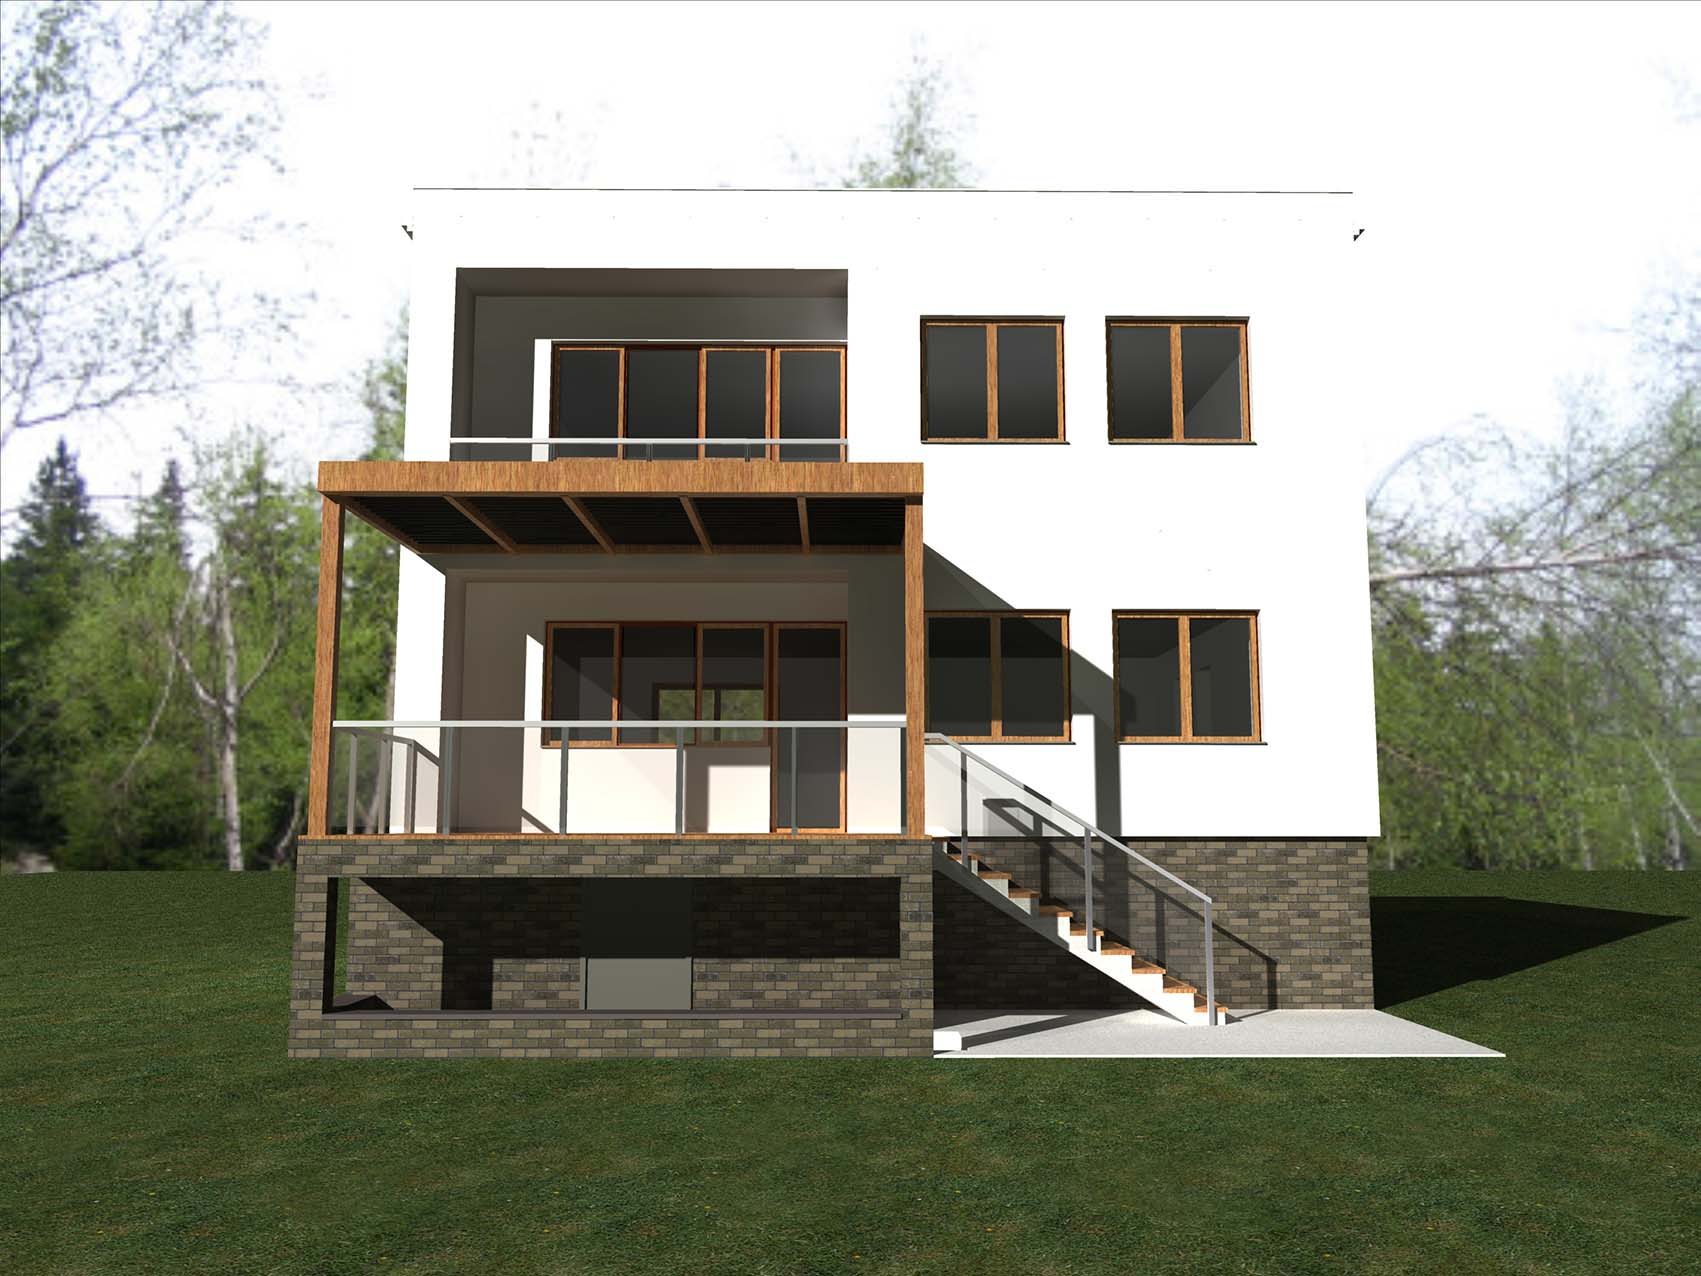 Single family- concept facades and interiors Wrocław, Wietrzna St. Surface: 130 m2 – AFTER RENOVATION